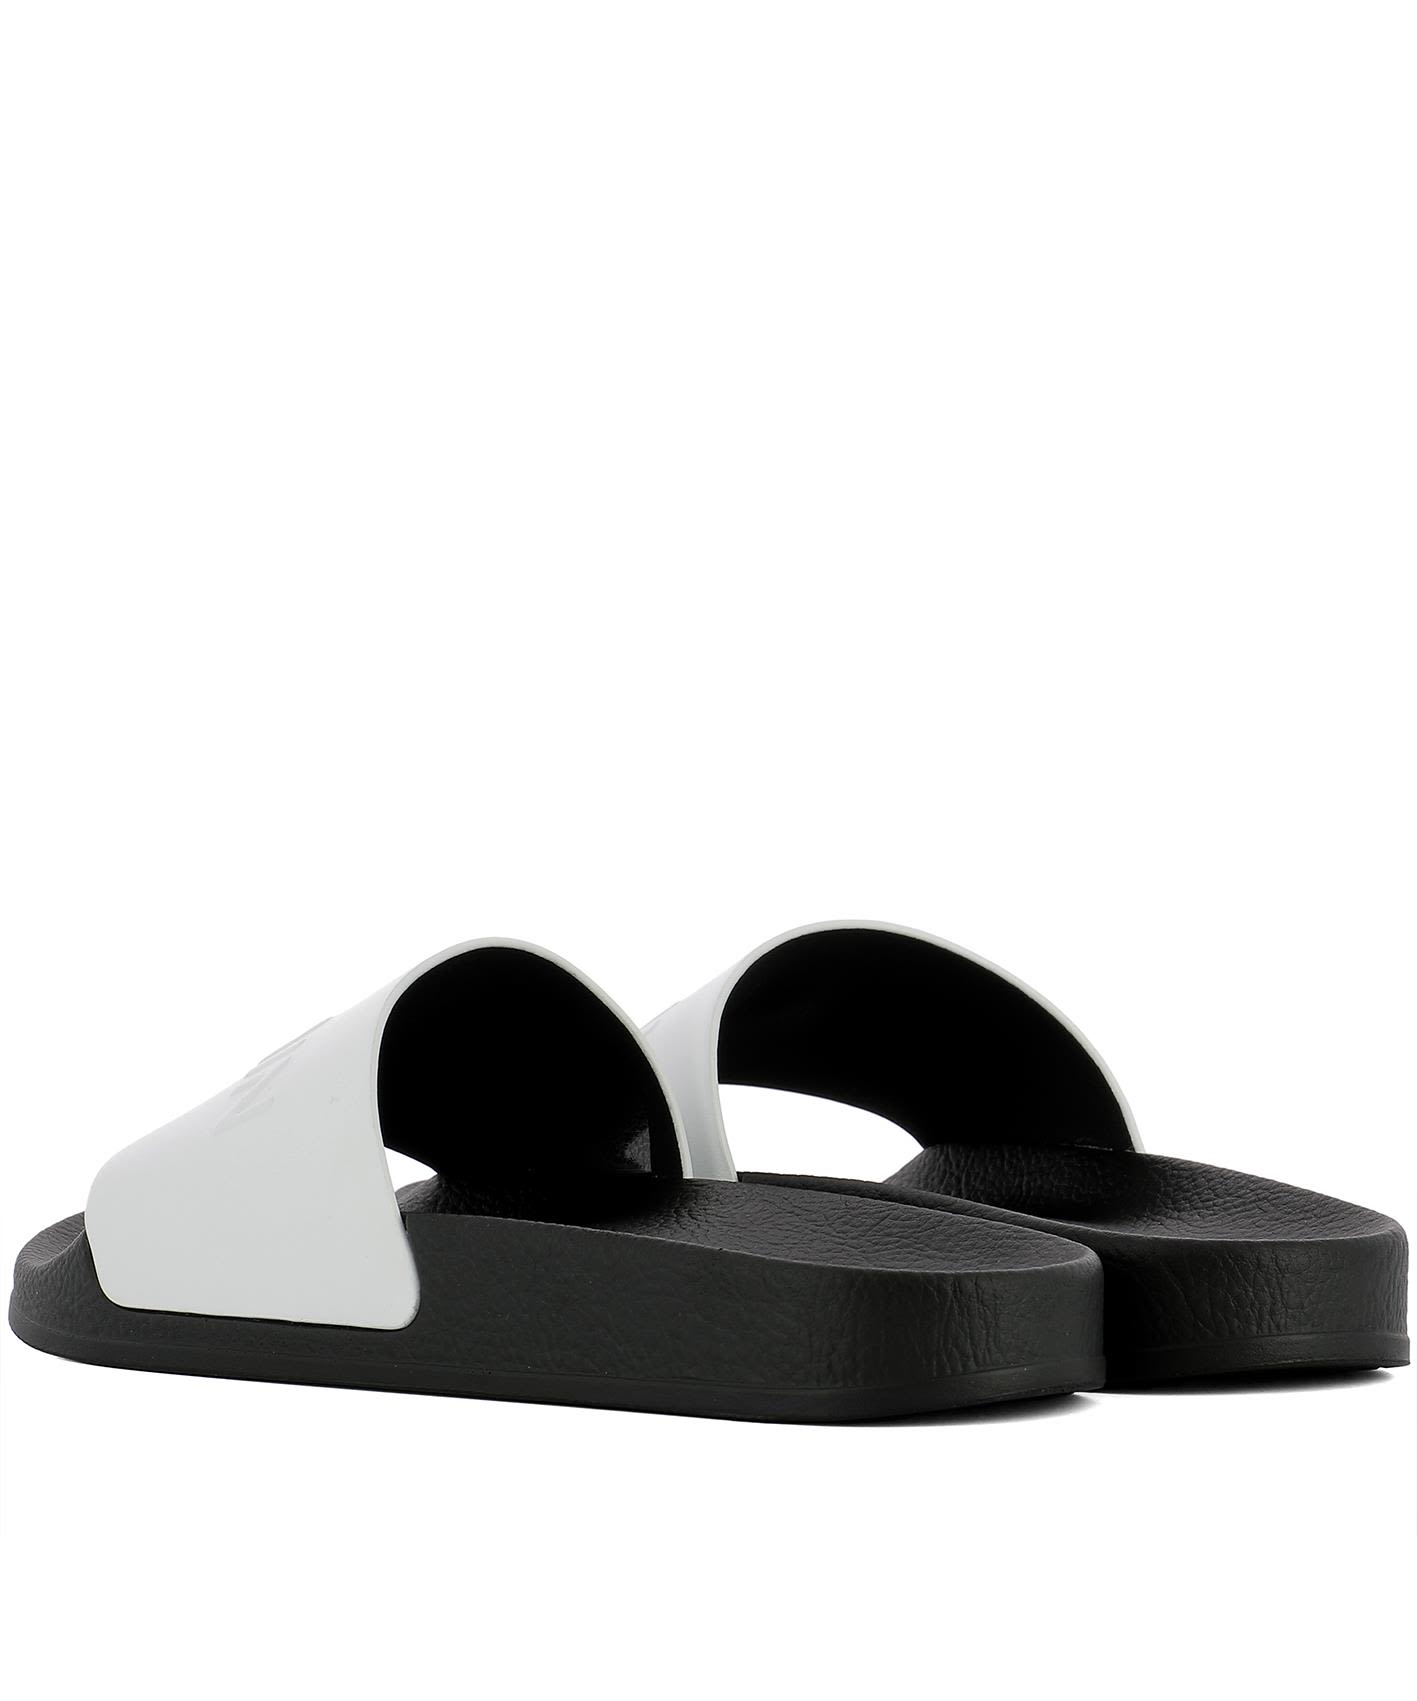 Balmain Rubber Sandals